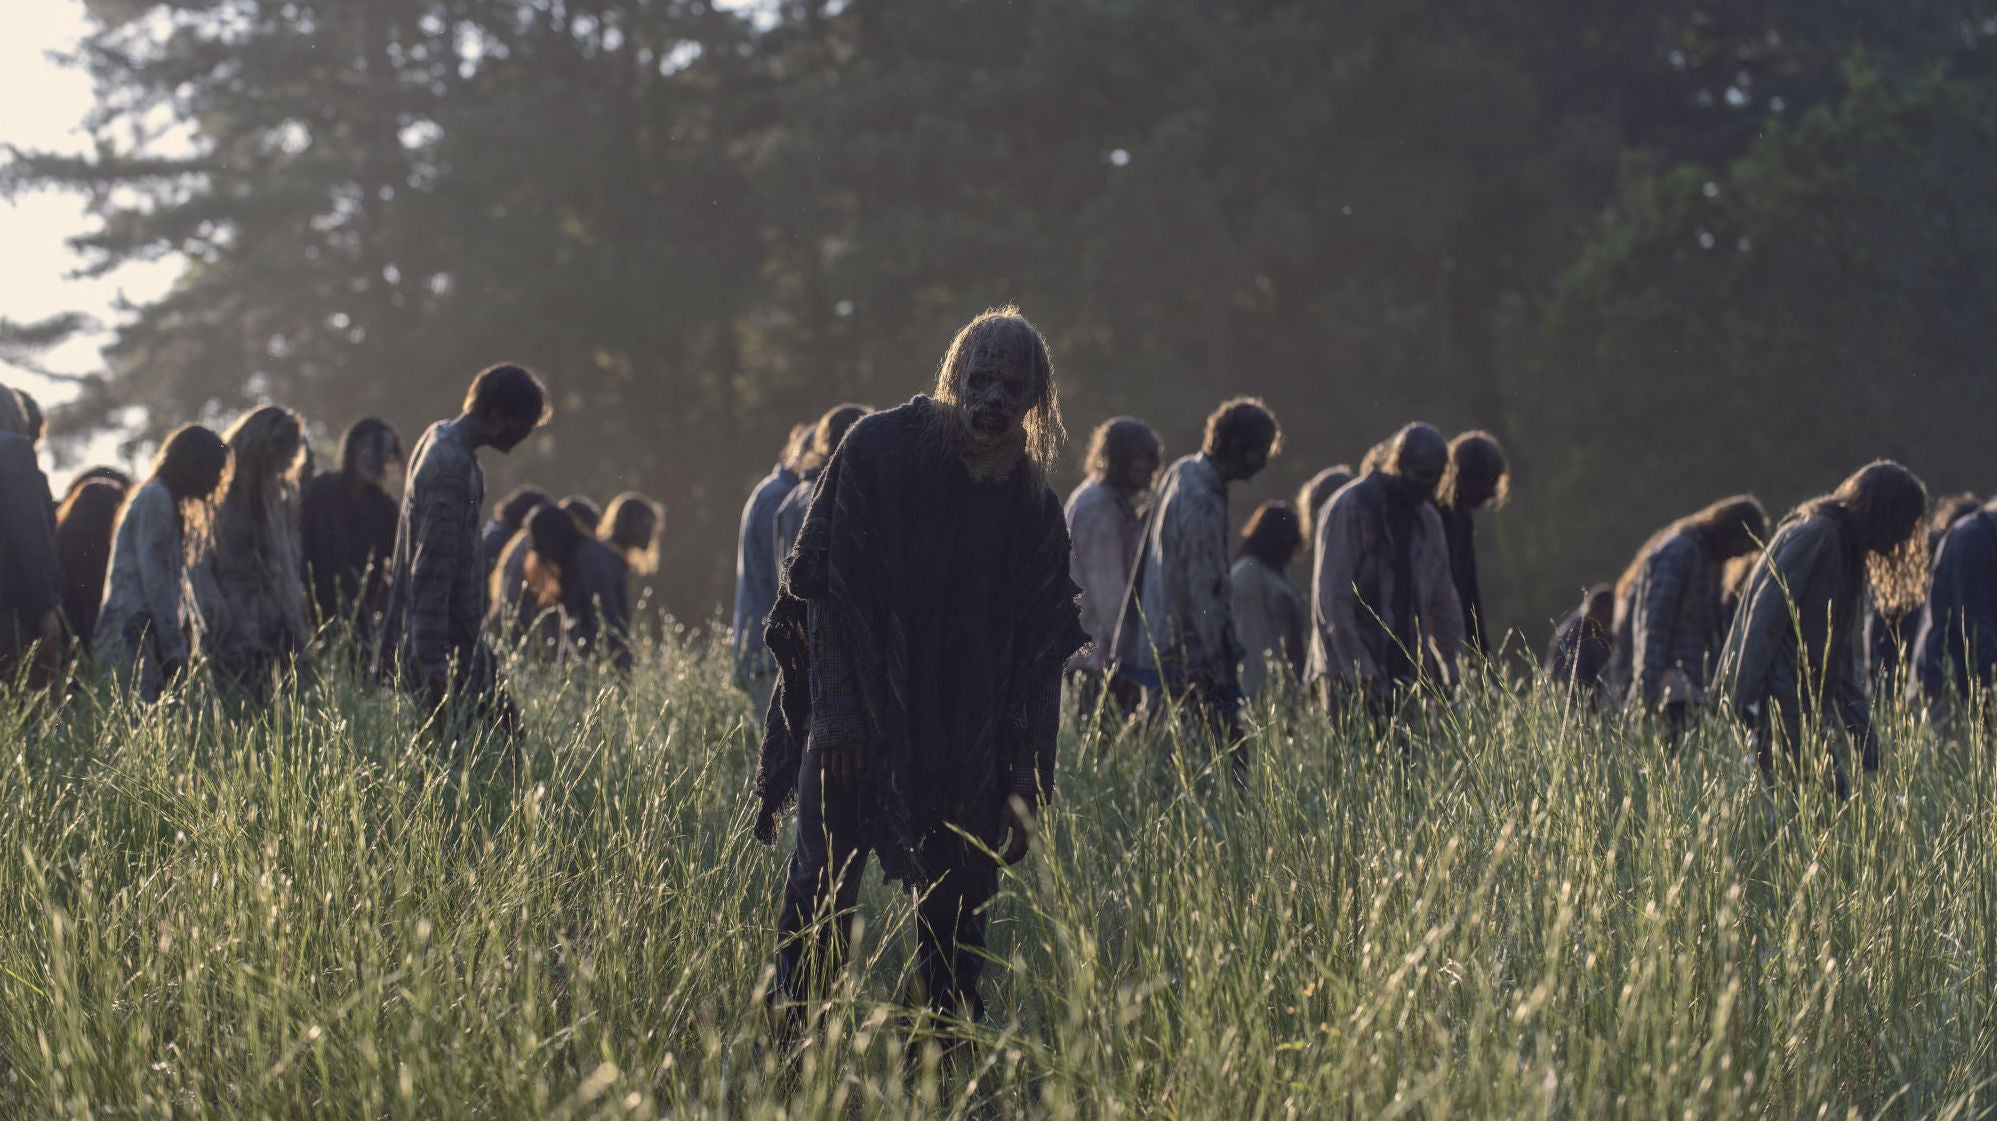 A Third Walking Dead Show Is Rising From The Grave